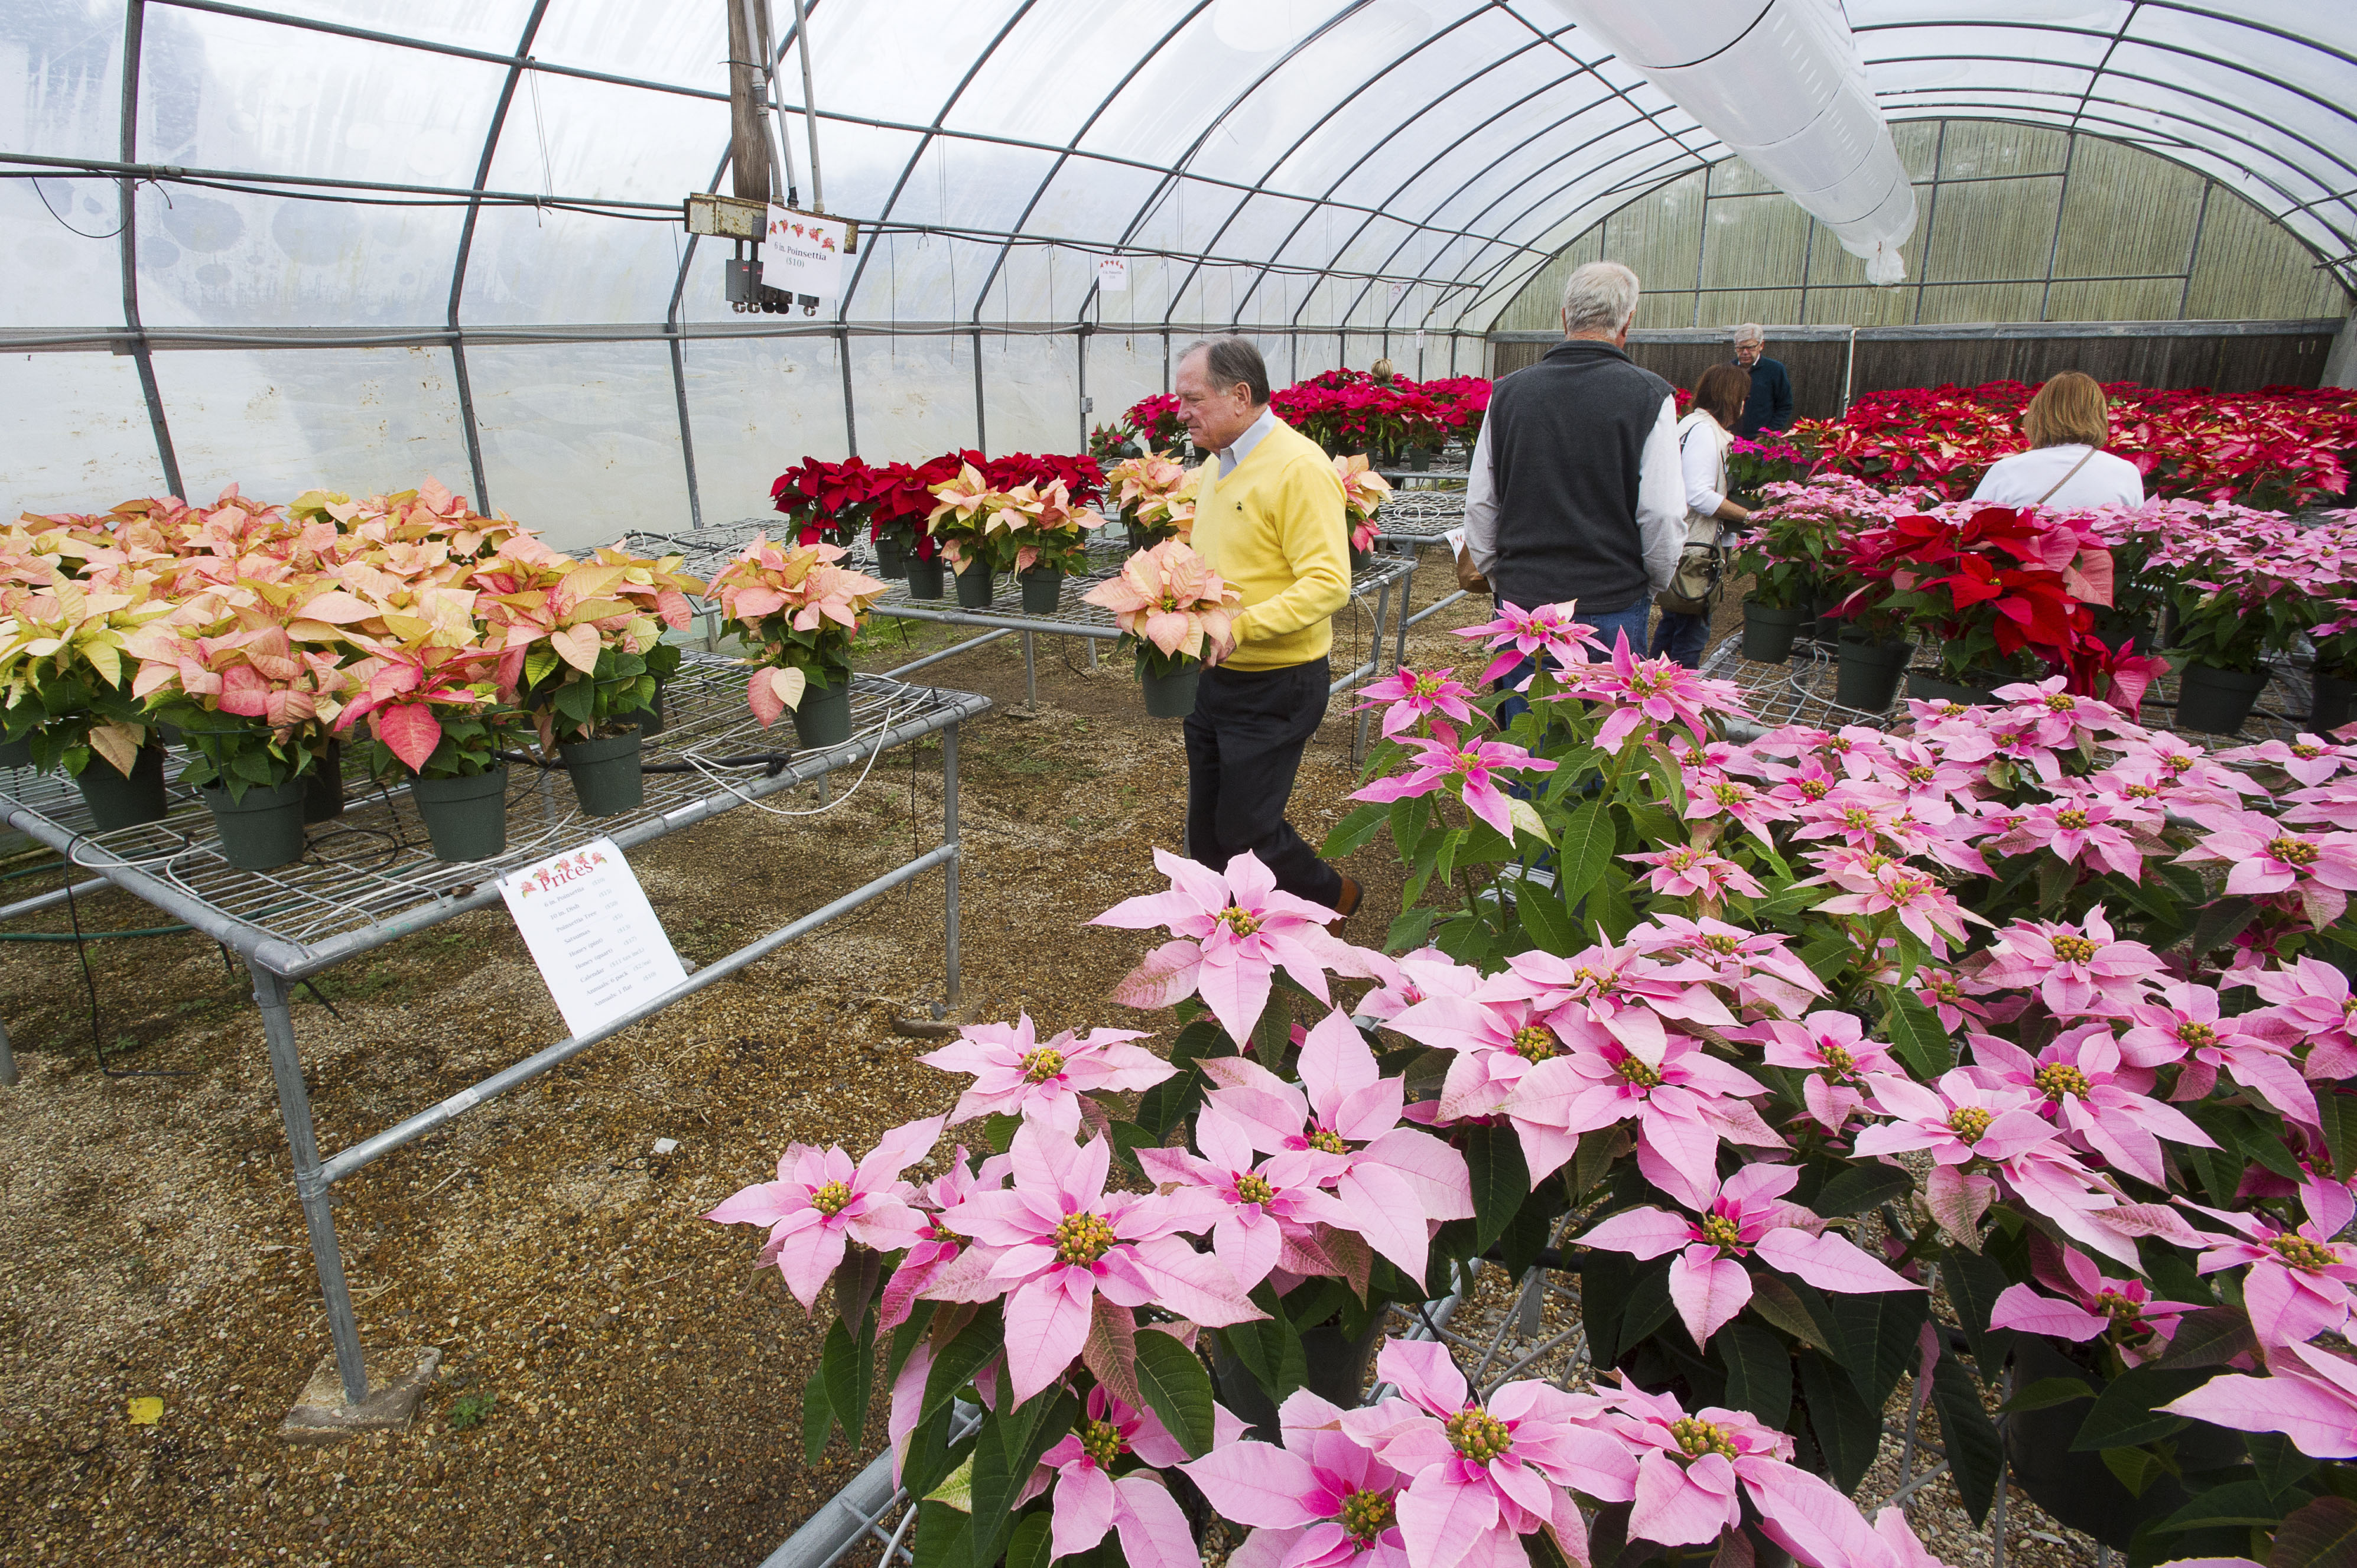 Visitors purchase poinsettias, evaluate new varieties at annual event